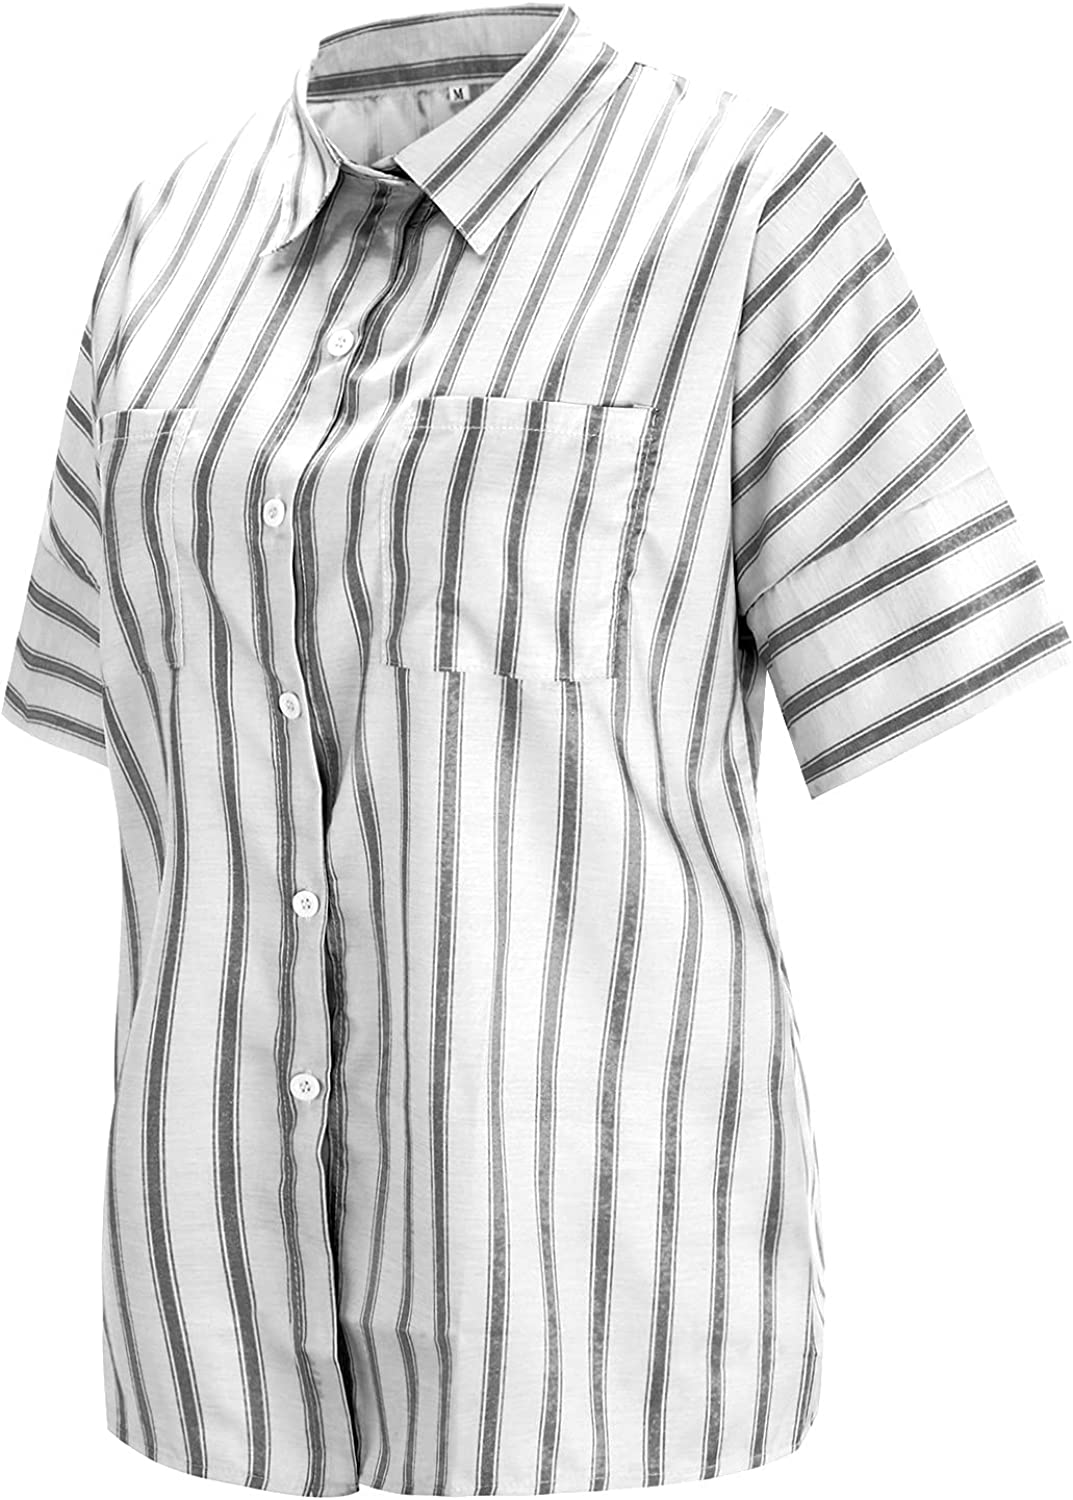 Half Sleeve Shirts for Women Challenge the lowest price of Japan ☆ Casual Virginia Beach Mall w T-shirts Striped Business